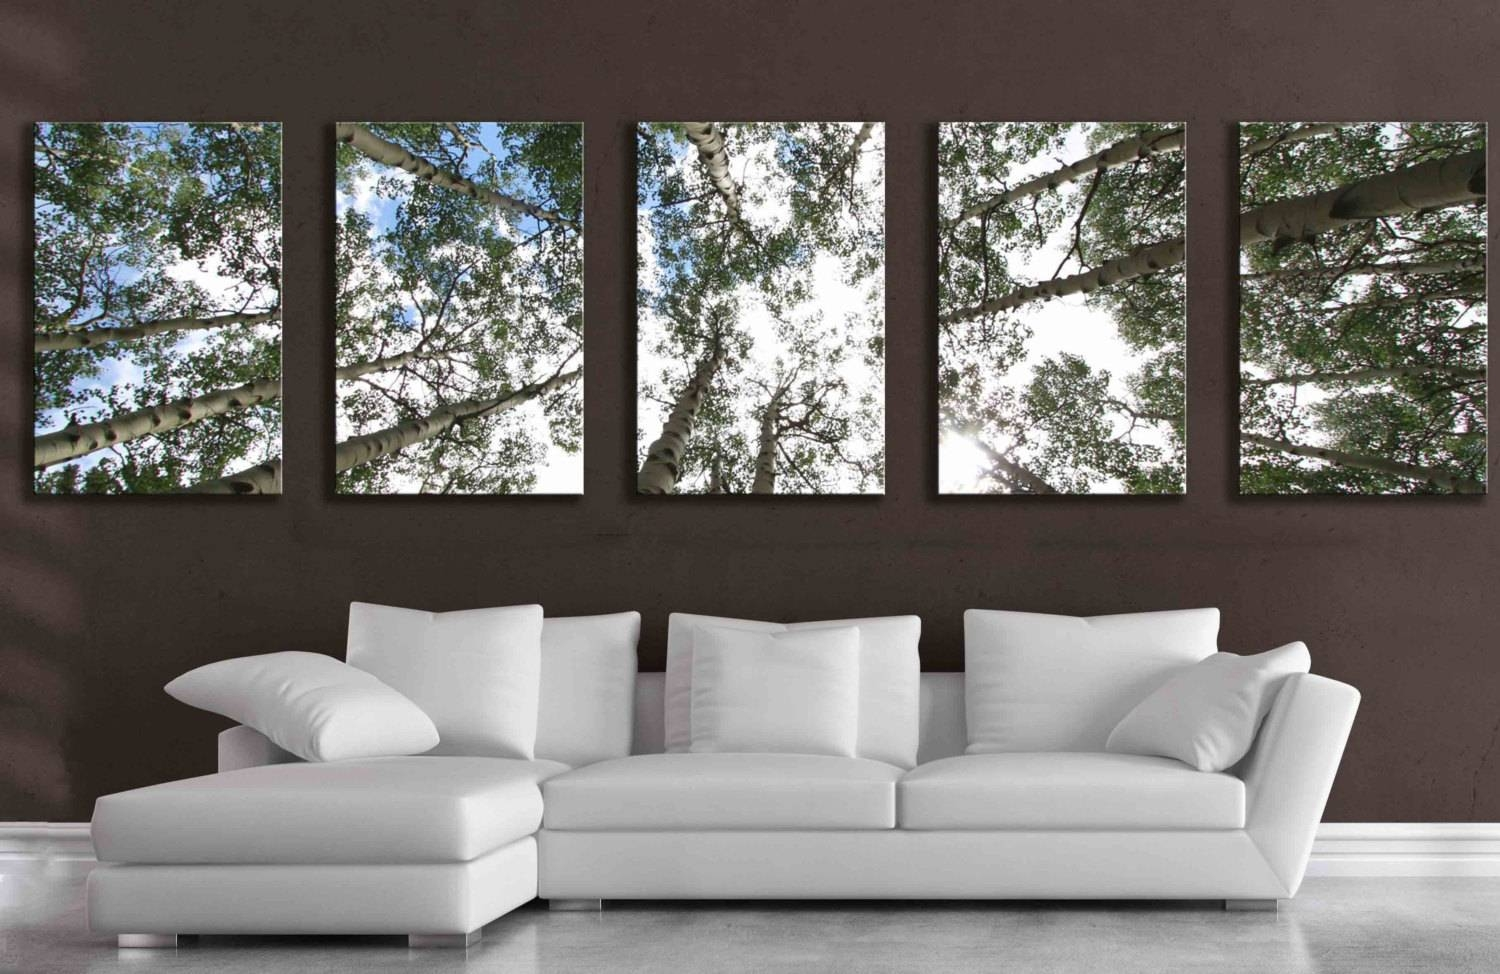 Large 5 Panel Wall Art Aspen Tree Canvas Decor Five Multipiece With Regard To Recent Large Green Wall Art (View 6 of 20)